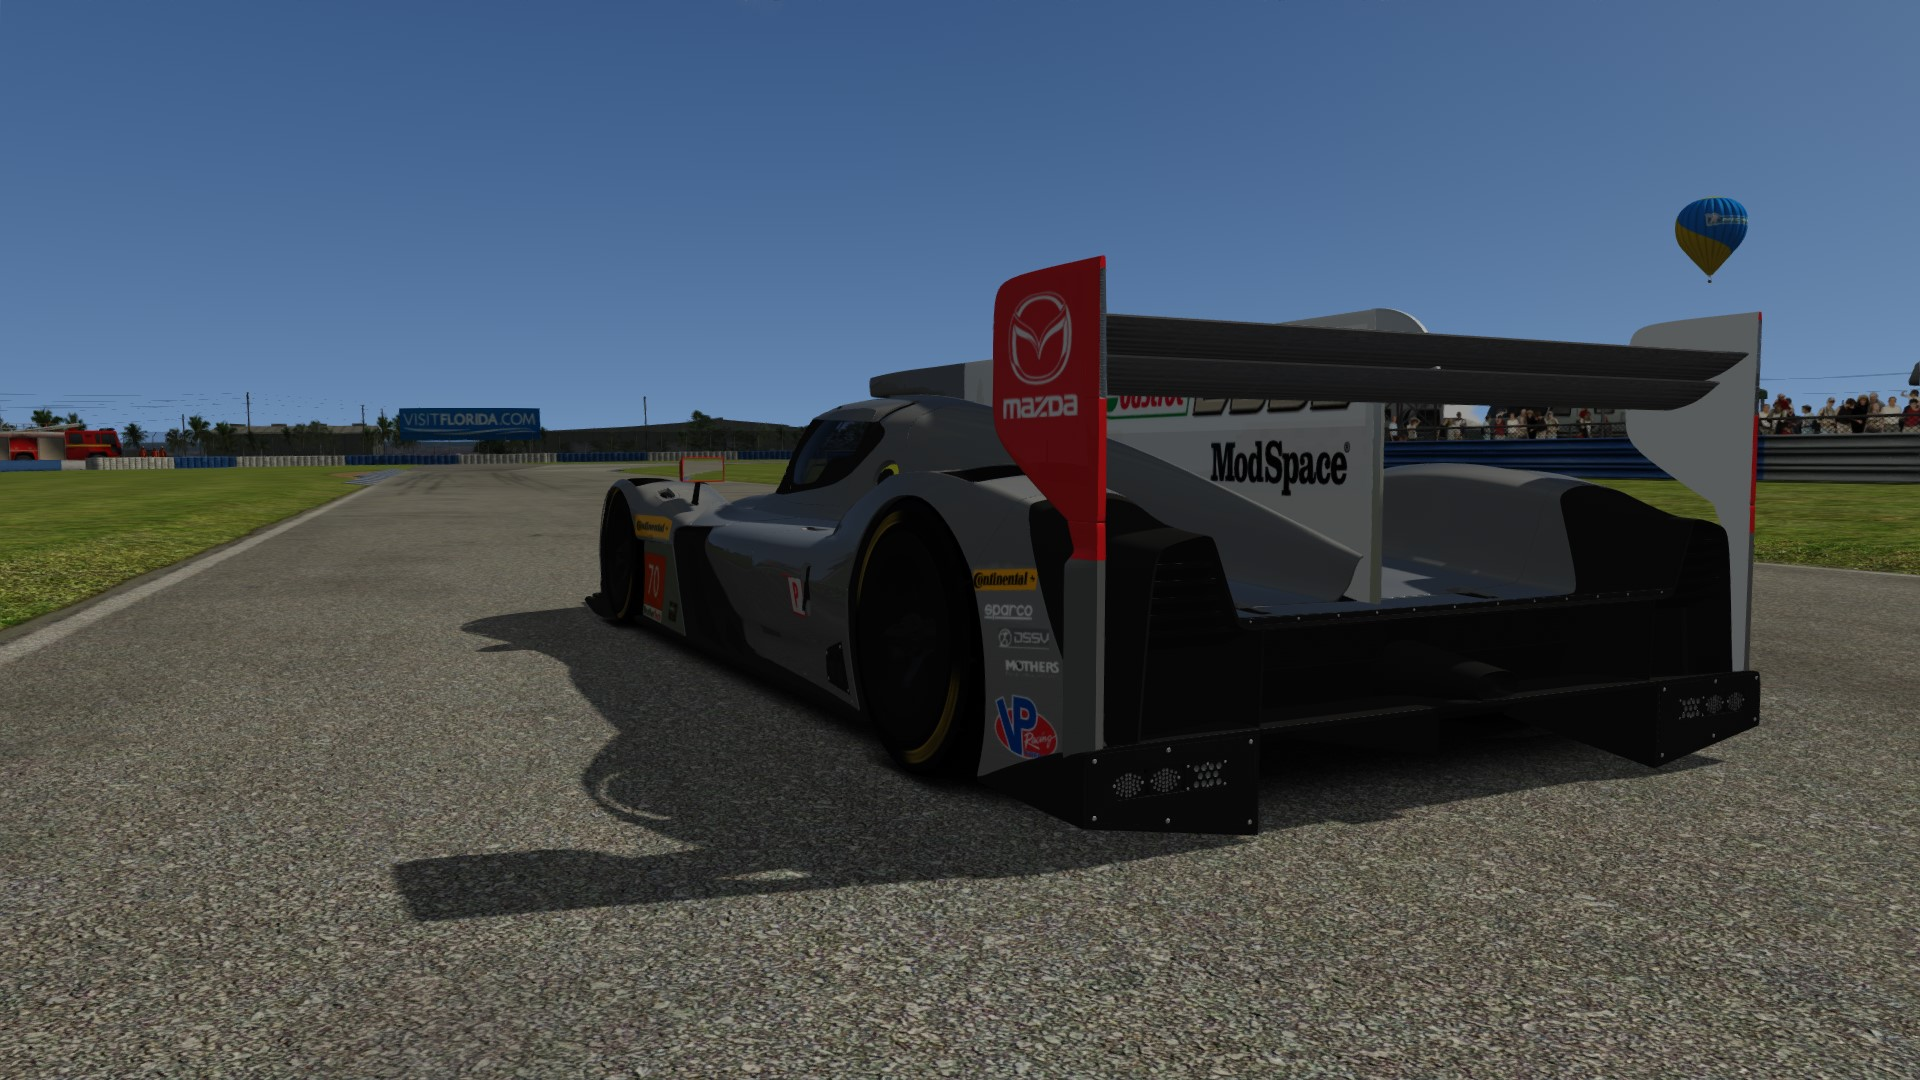 Screenshot_ag_mazda_rt24-p_sebring_1-4-117-16-23-24.jpg